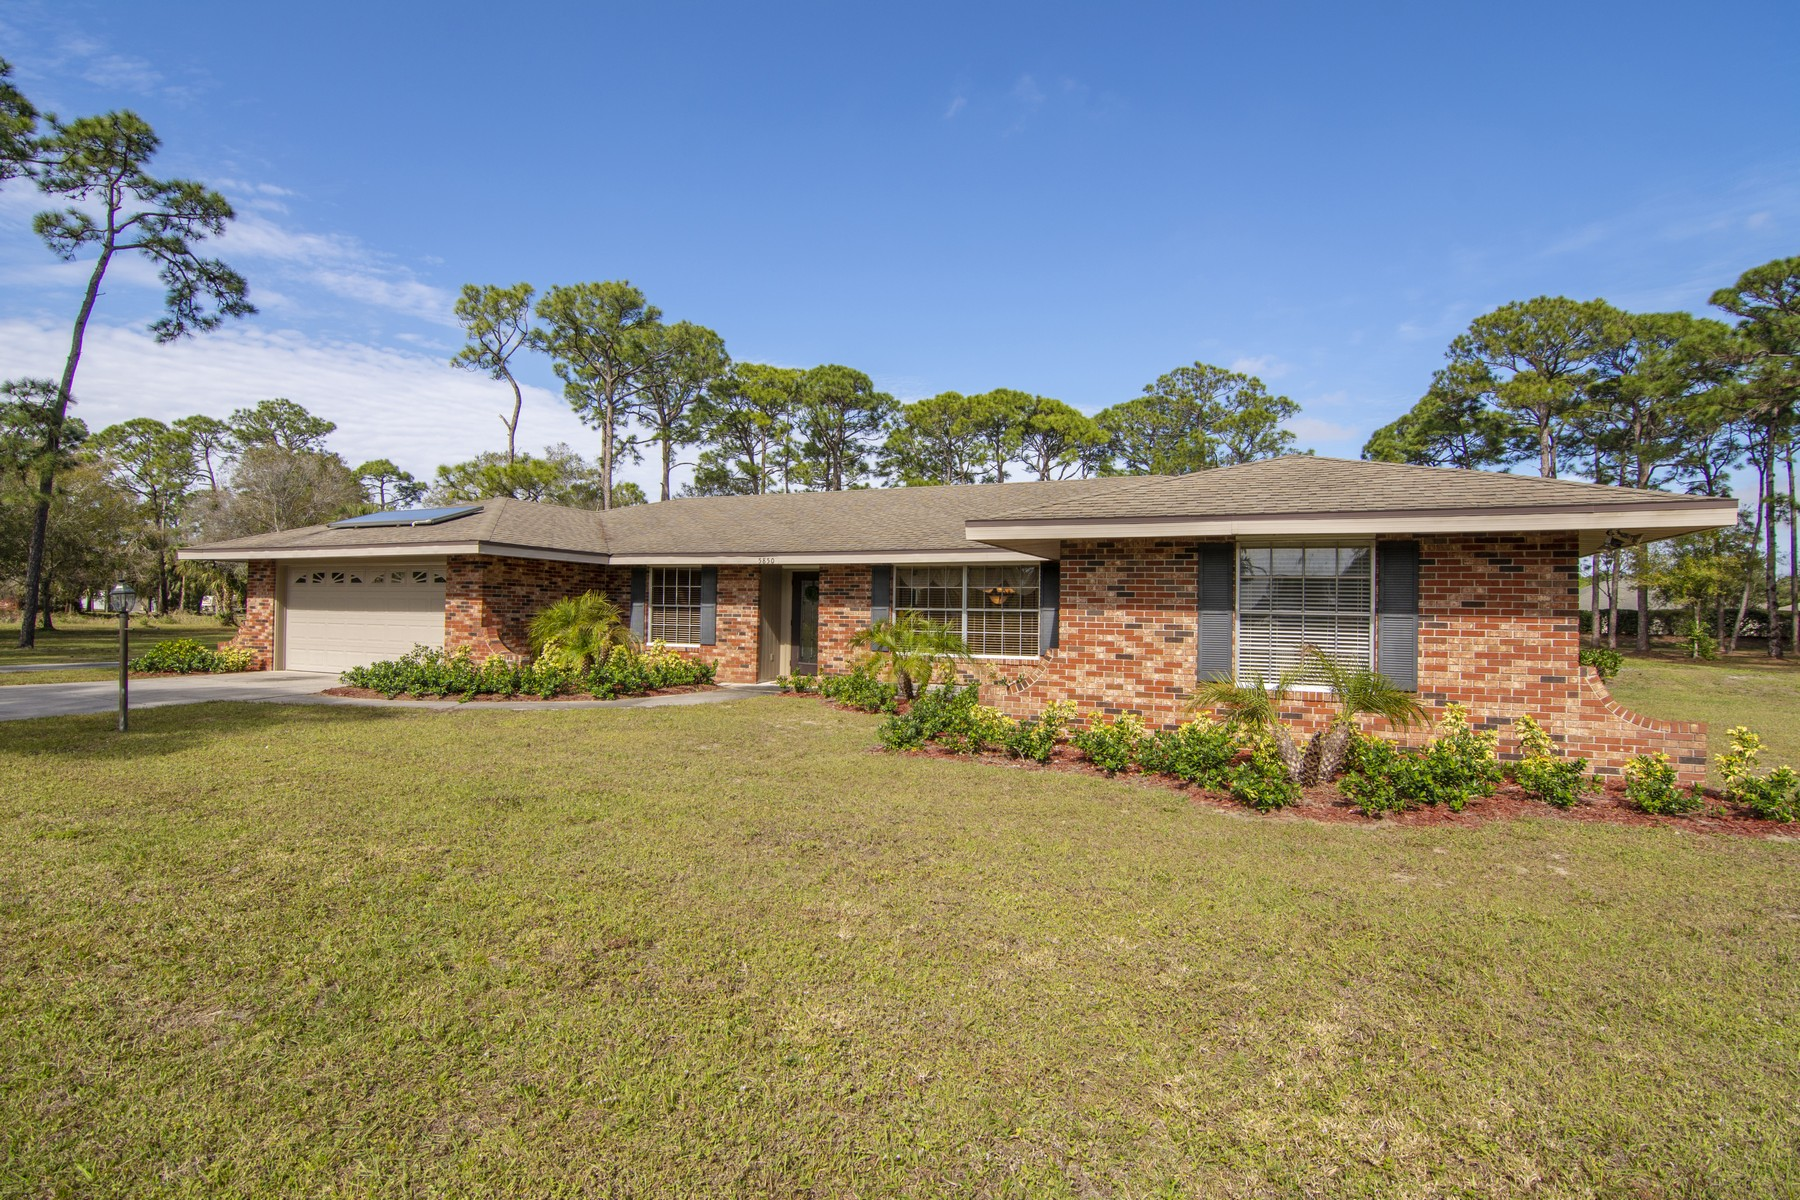 Property for Sale at Over Four Acres, Pool, Newer Everything! 5850 45th Street Vero Beach, Florida 32967 United States